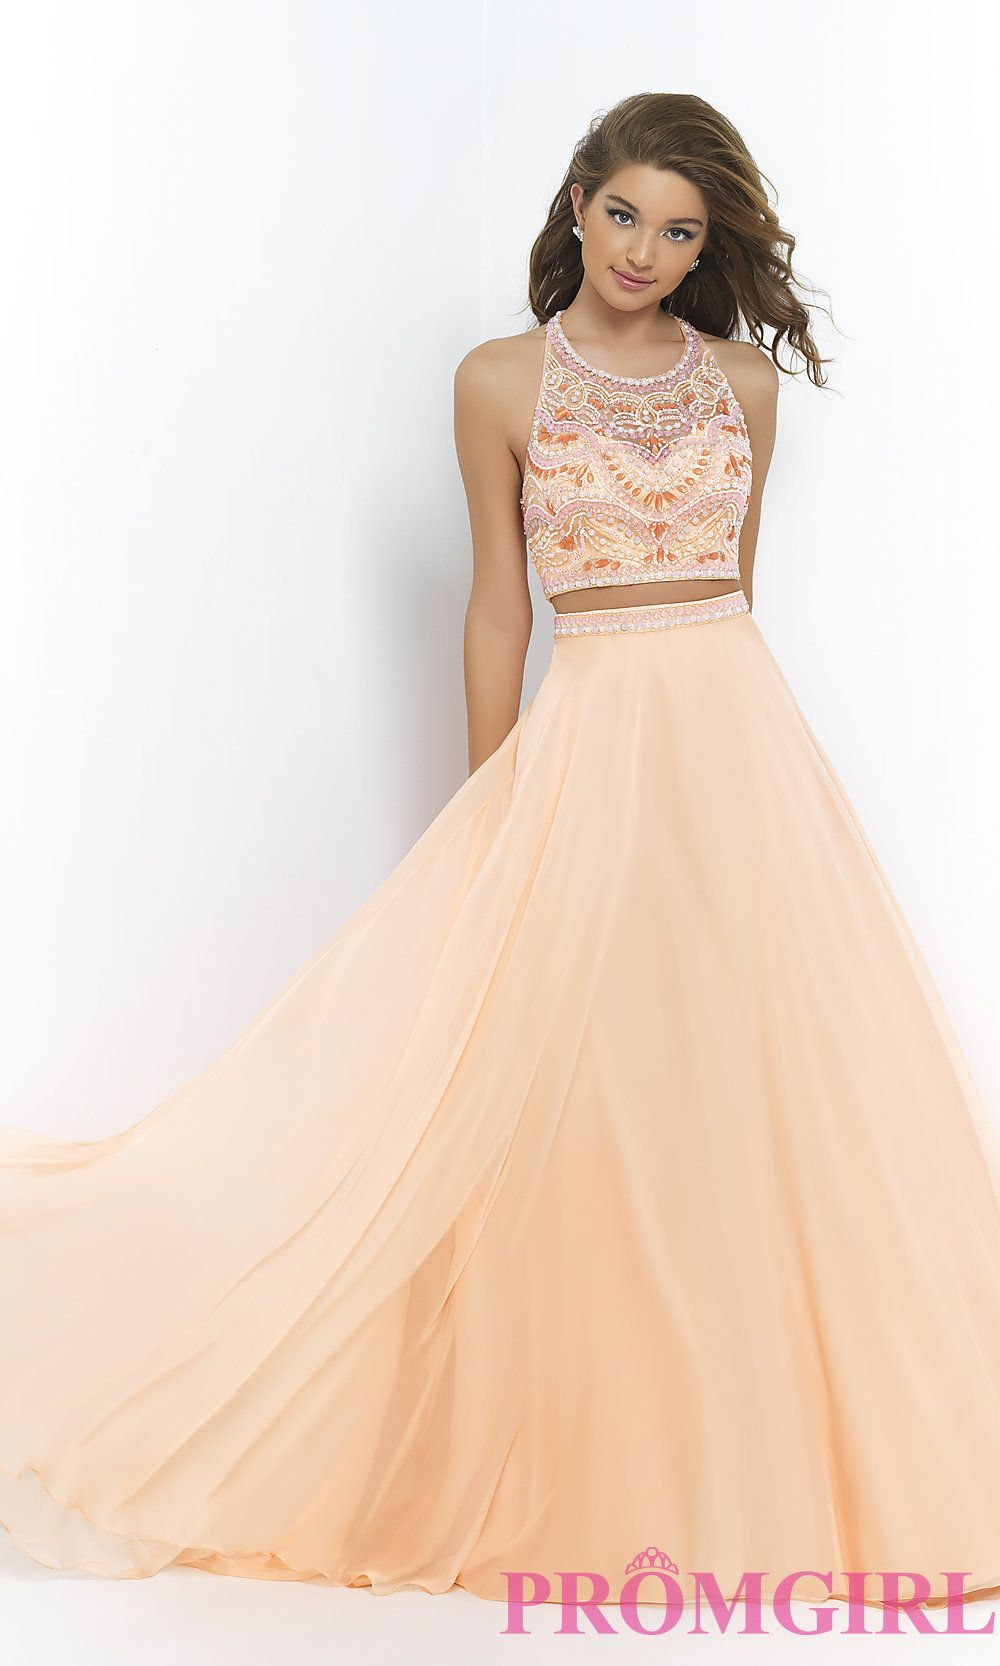 17  images about Prom dress ideas on Pinterest - Sexy- Long prom ...